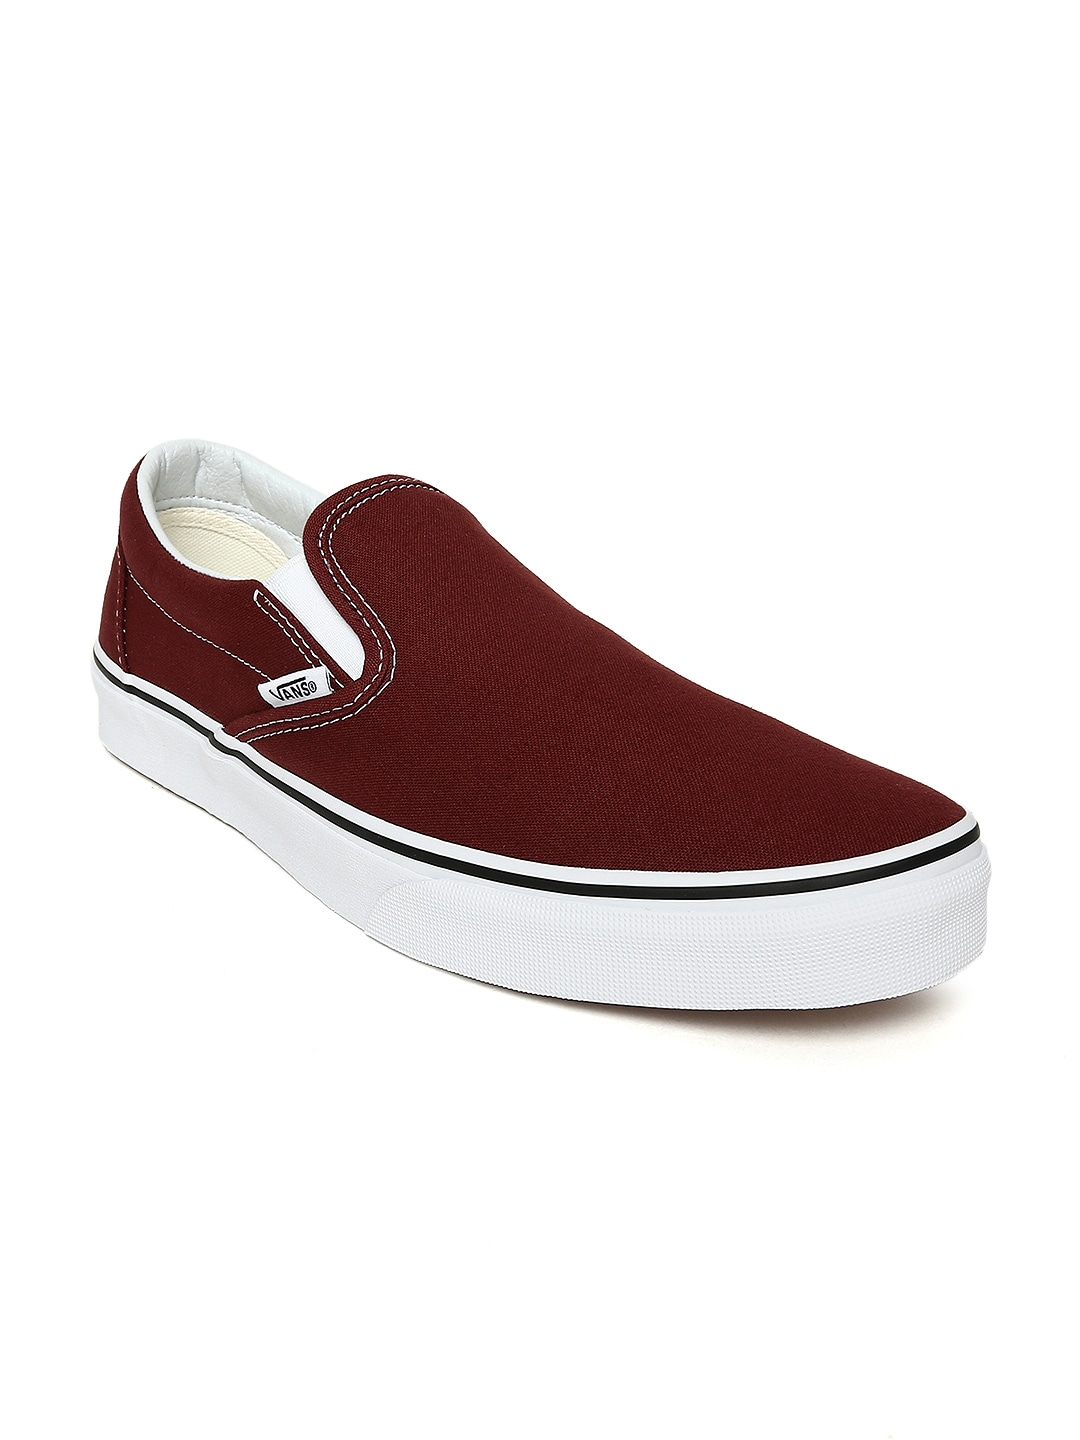 9c147abd8cb8ce Vans Maroon Shoes - Buy Vans Maroon Shoes online in India